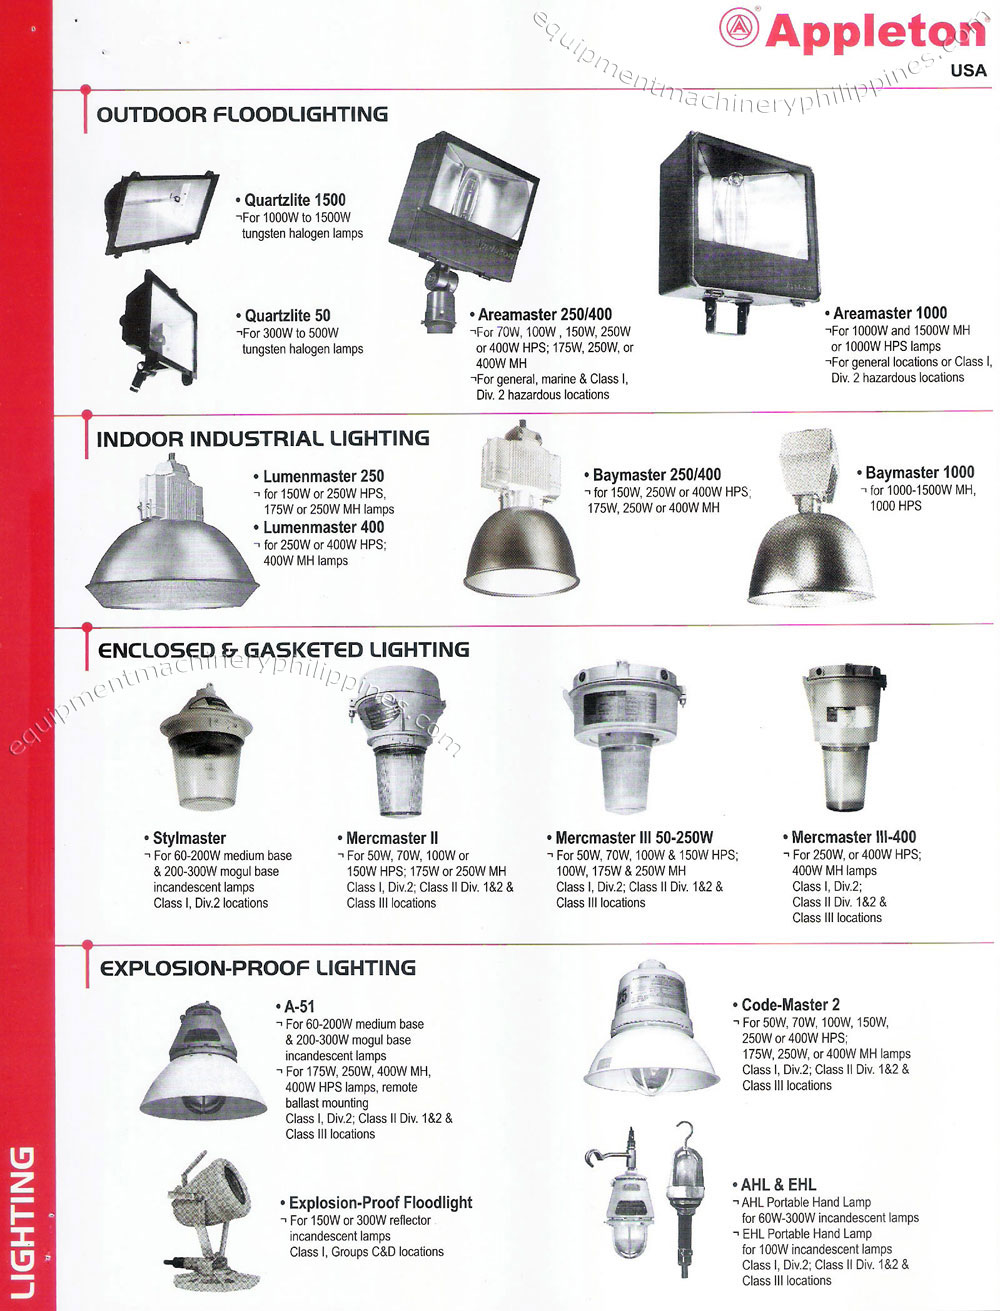 Philippines Leton Outdoor Floodlighting Indoor Lighting Enclosed And Gasketed Explosion Proof